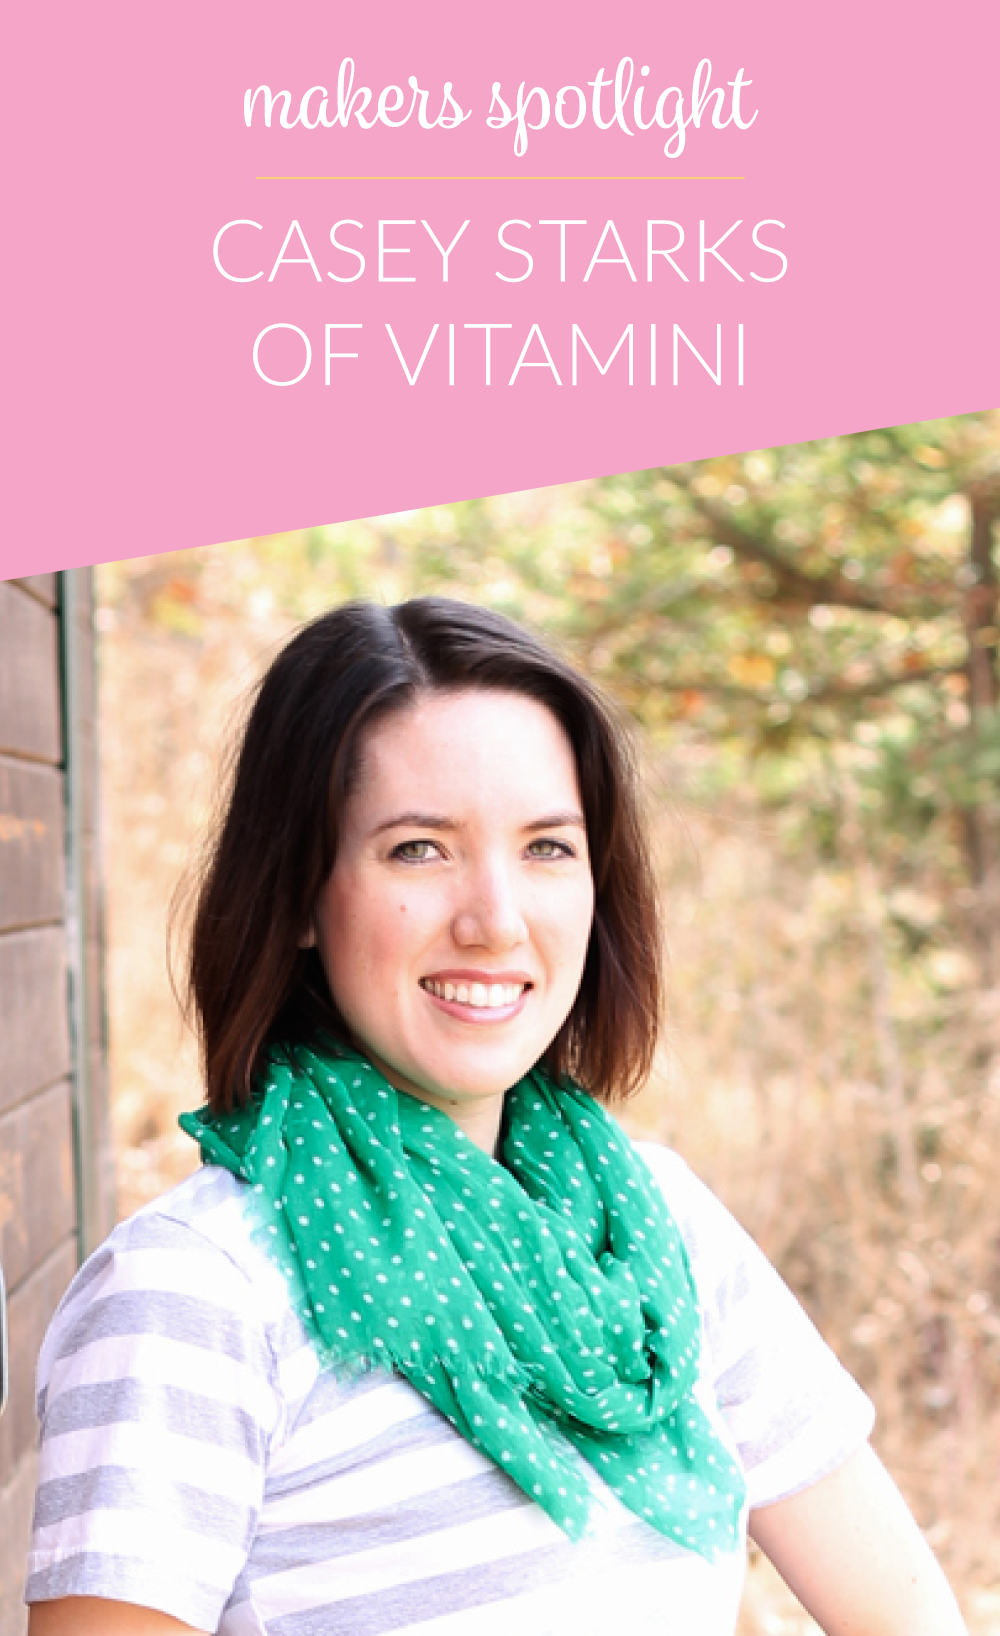 Makers Spotlight: Casey Starks of Vitamini